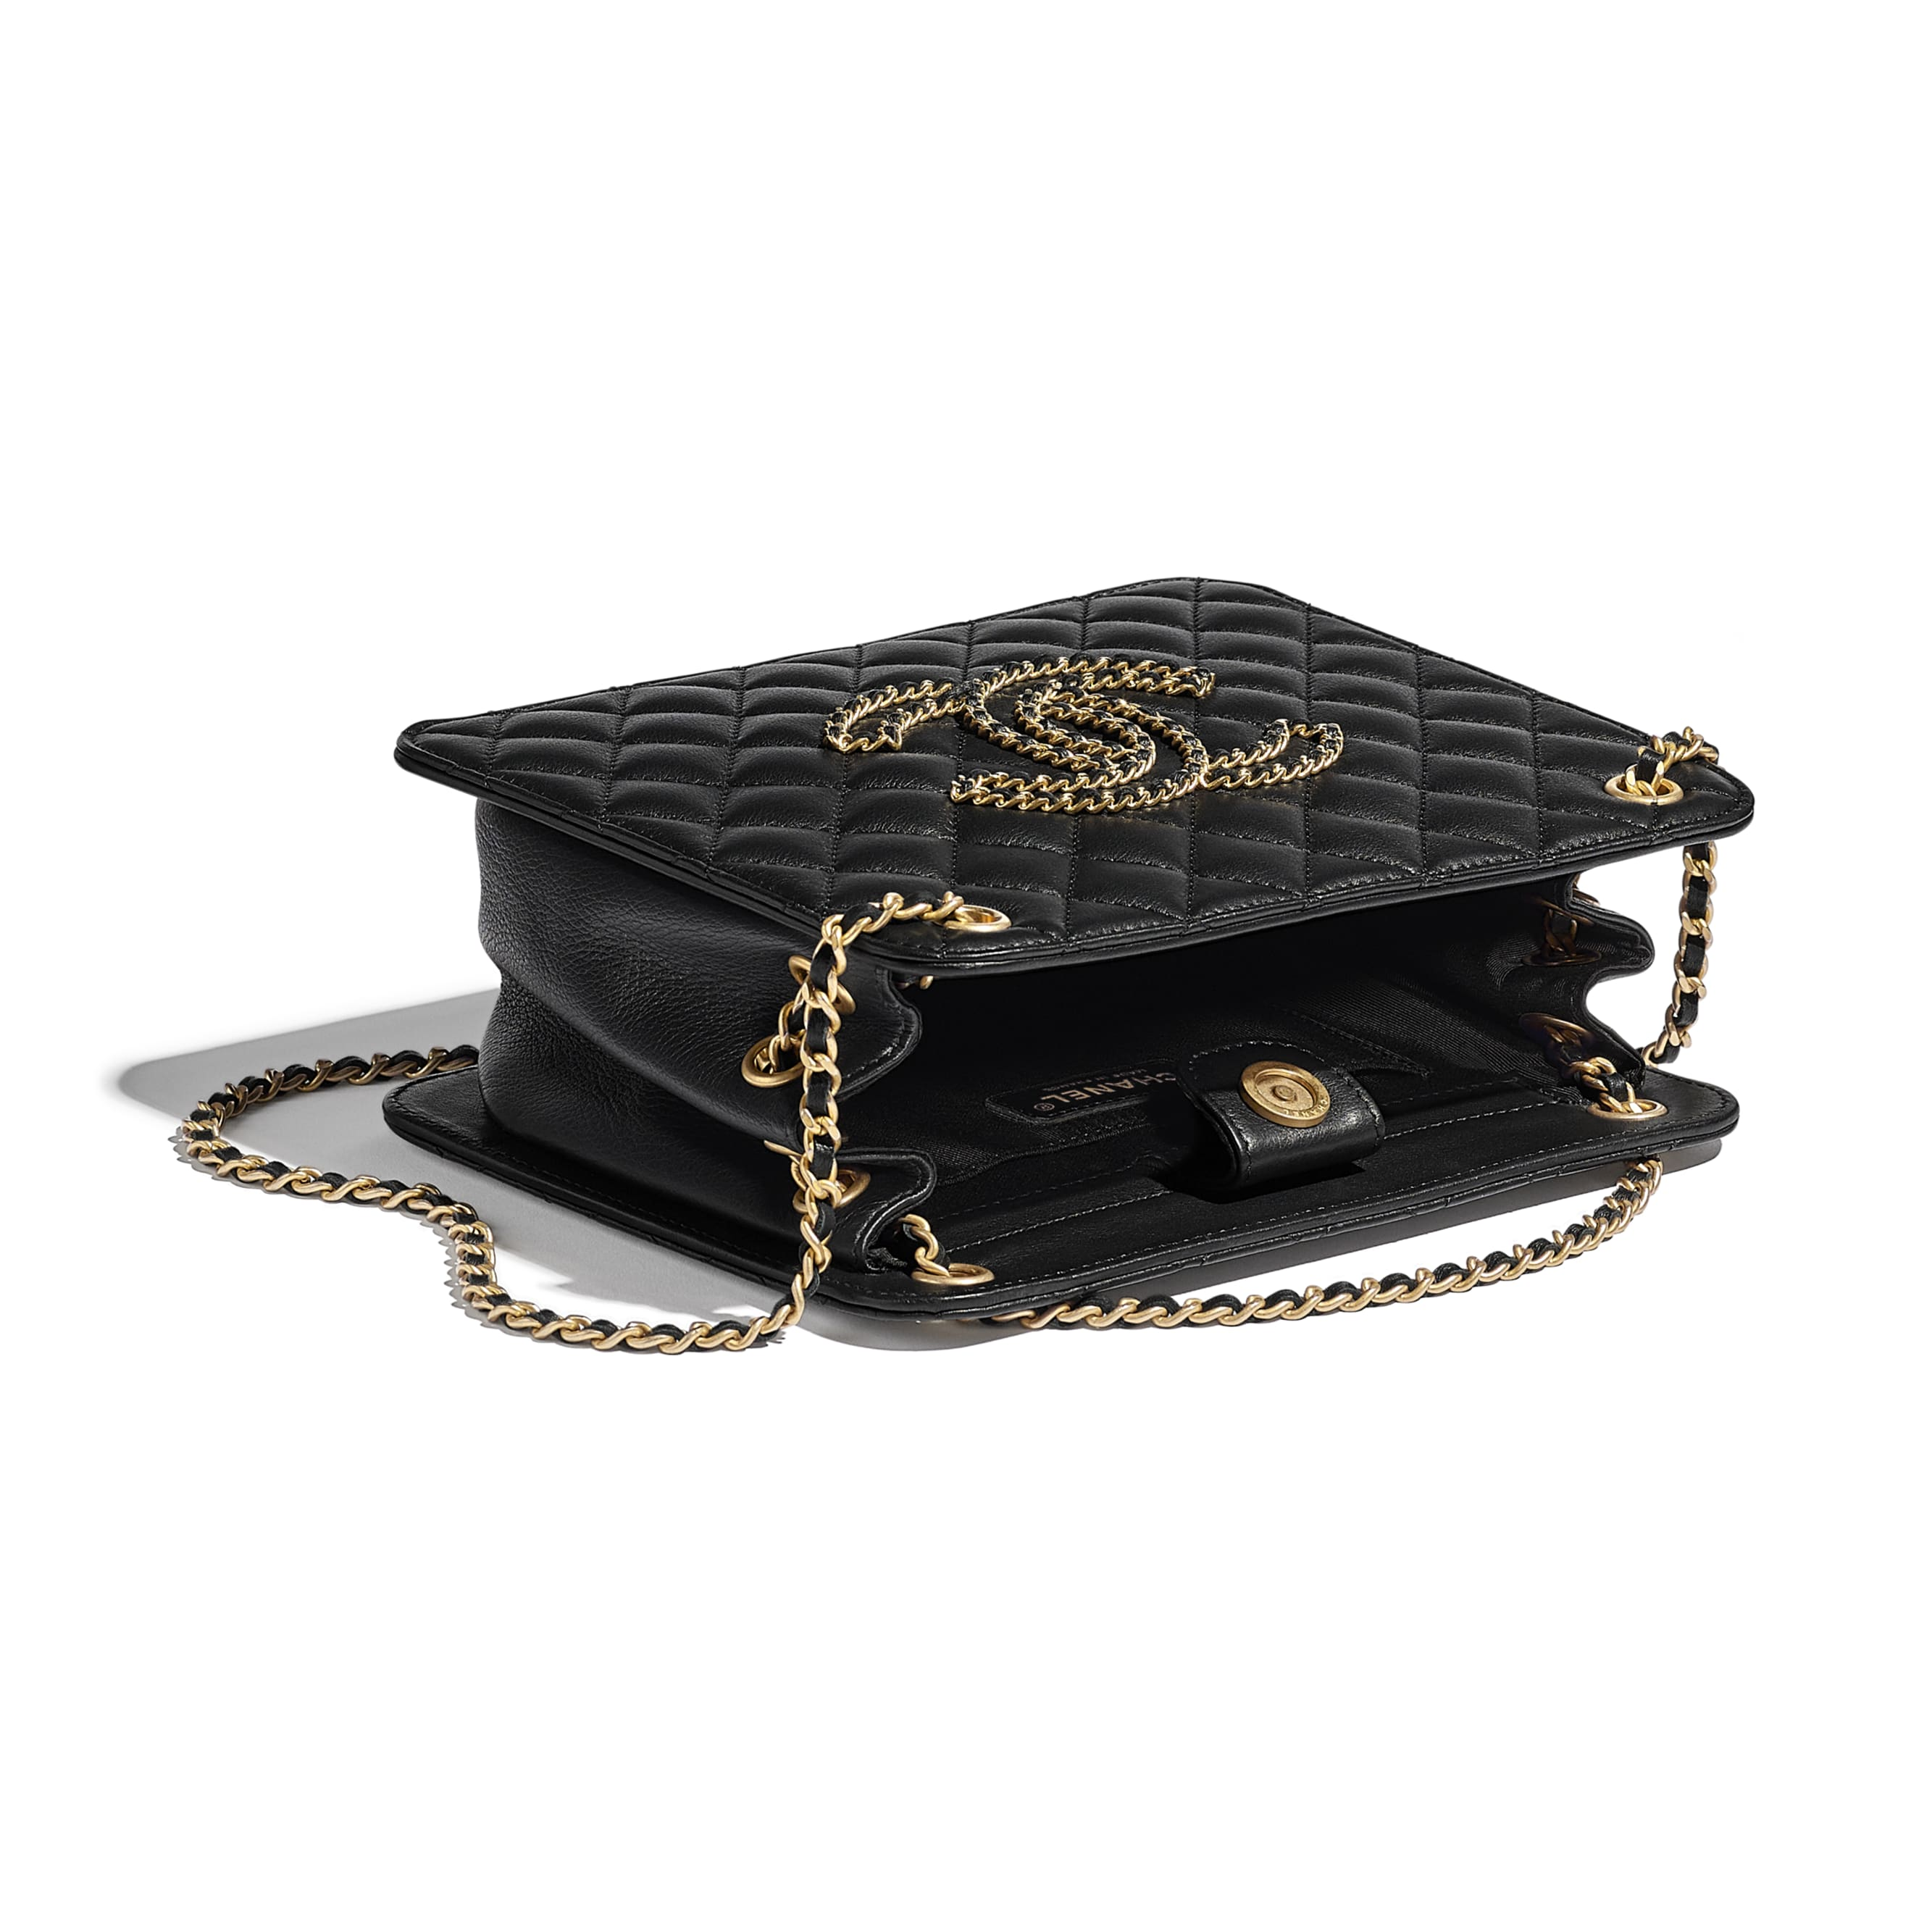 Accordion Handbag - Black - Calfskin & Gold-Tone Metal - CHANEL - Other view - see standard sized version